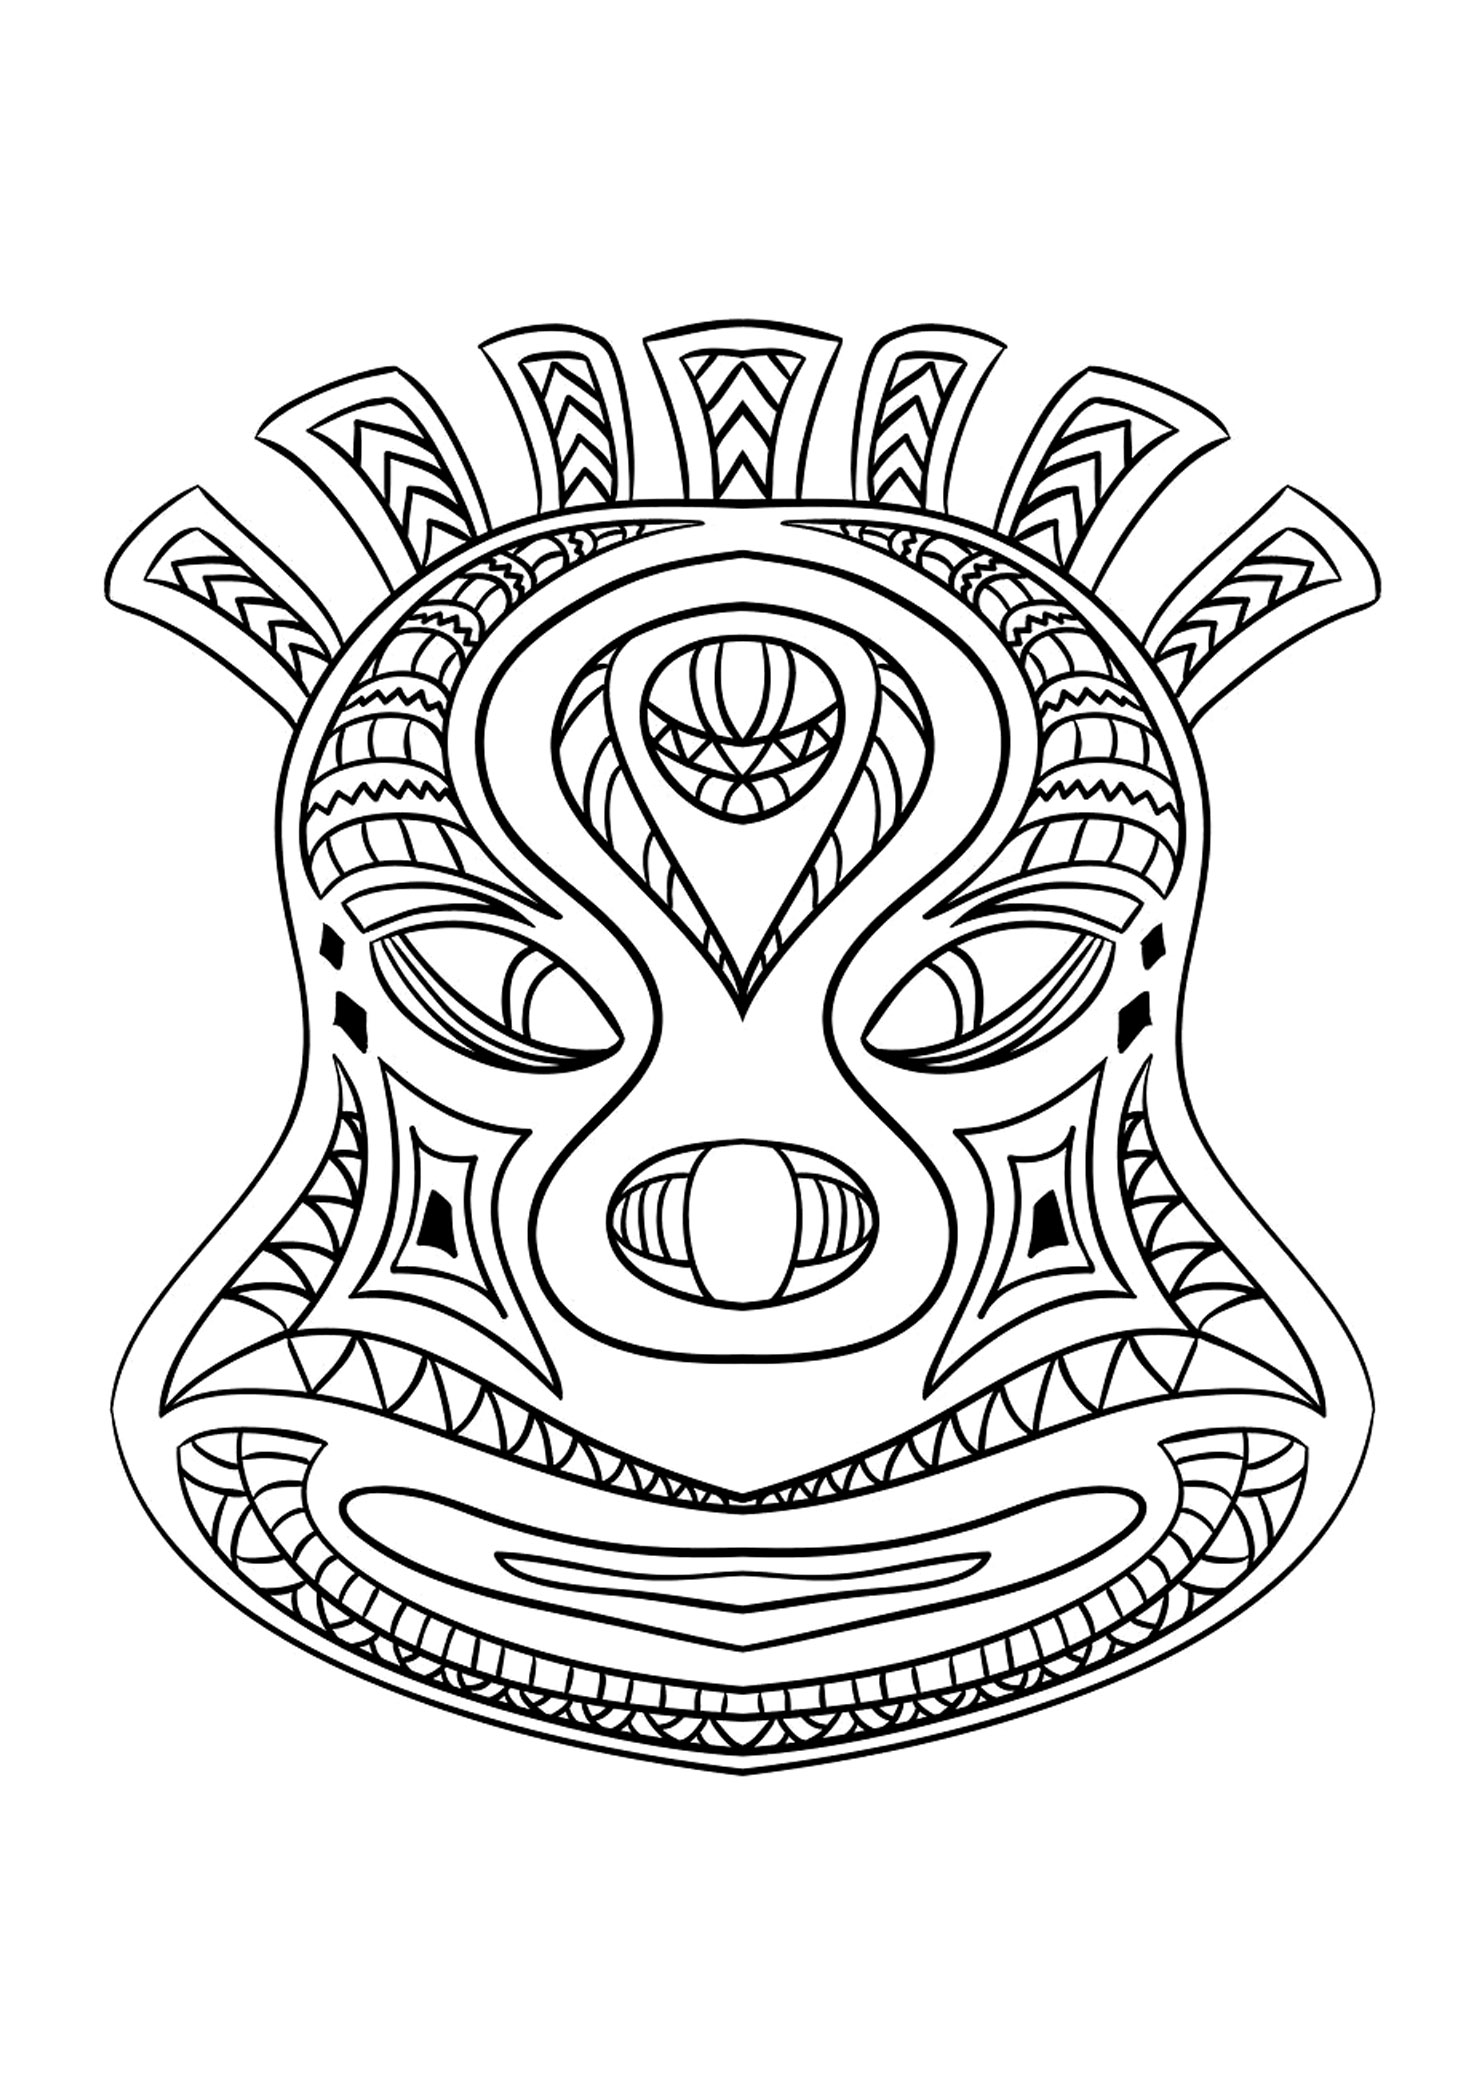 Coloring picture of an African mask - 2